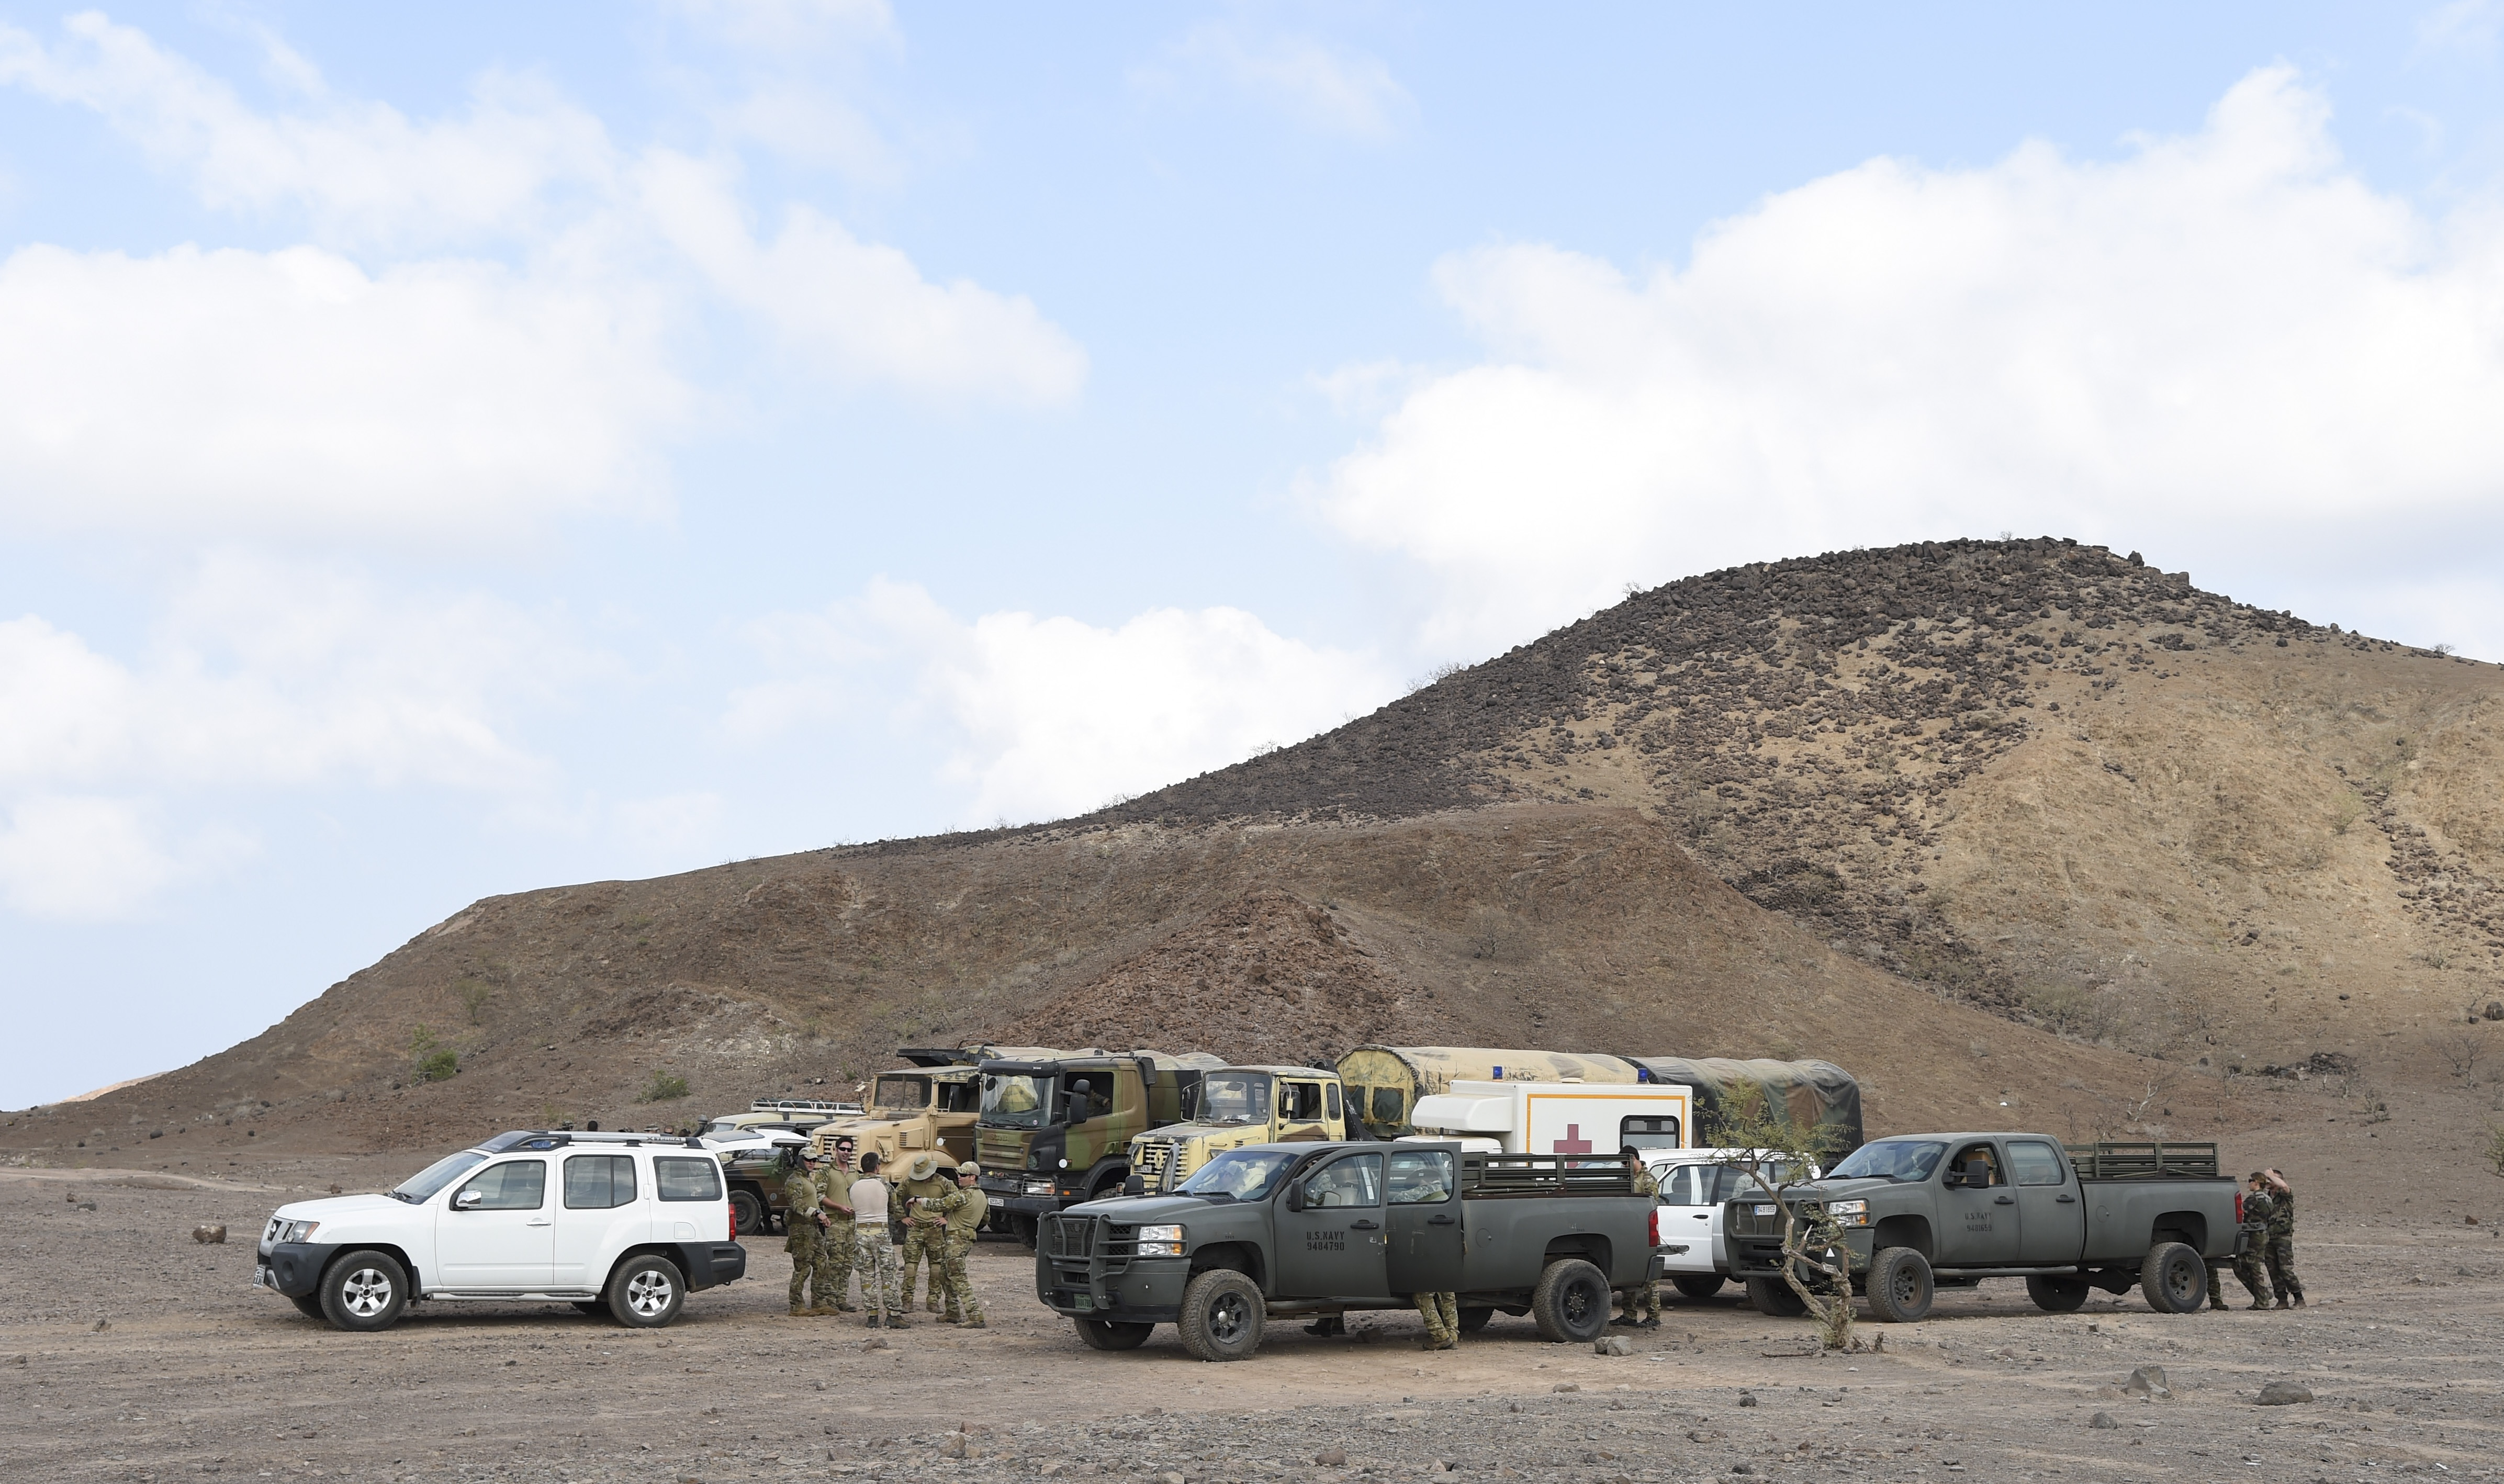 U.S. Navy Sailors with Explosive Ordnance Disposal (EOD) Mobile Unit 6, Task Force Sparta, and French Military EOD personnel gather to coordinate their efforts for the mission, Oct. 22, 2016, in Djibouti. During this operation, Navy and French EOD personnel worked bilaterally to safely clear the range area of unexploded ordnance. (U.S. Air Force photo by Staff Sgt. Penny Snoozy)